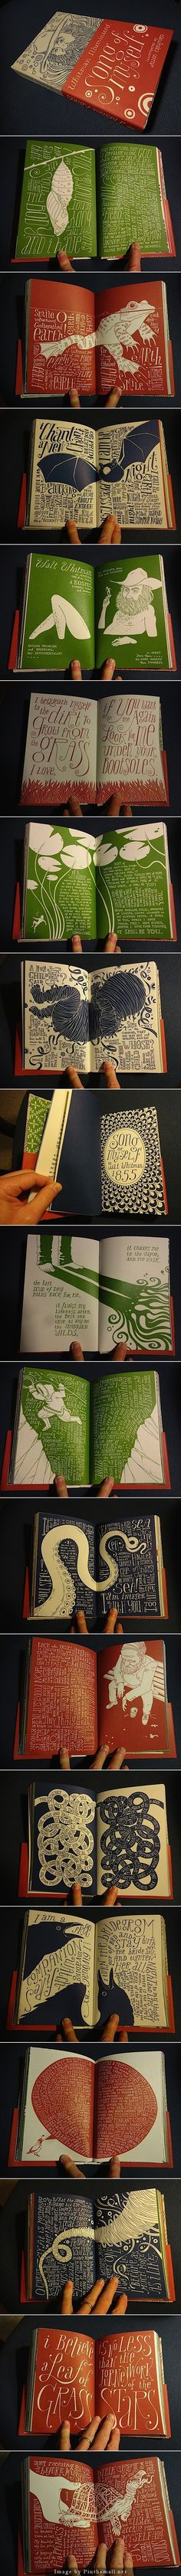 Hand Illustrated Book by Allen Crawford Check out the website to see more